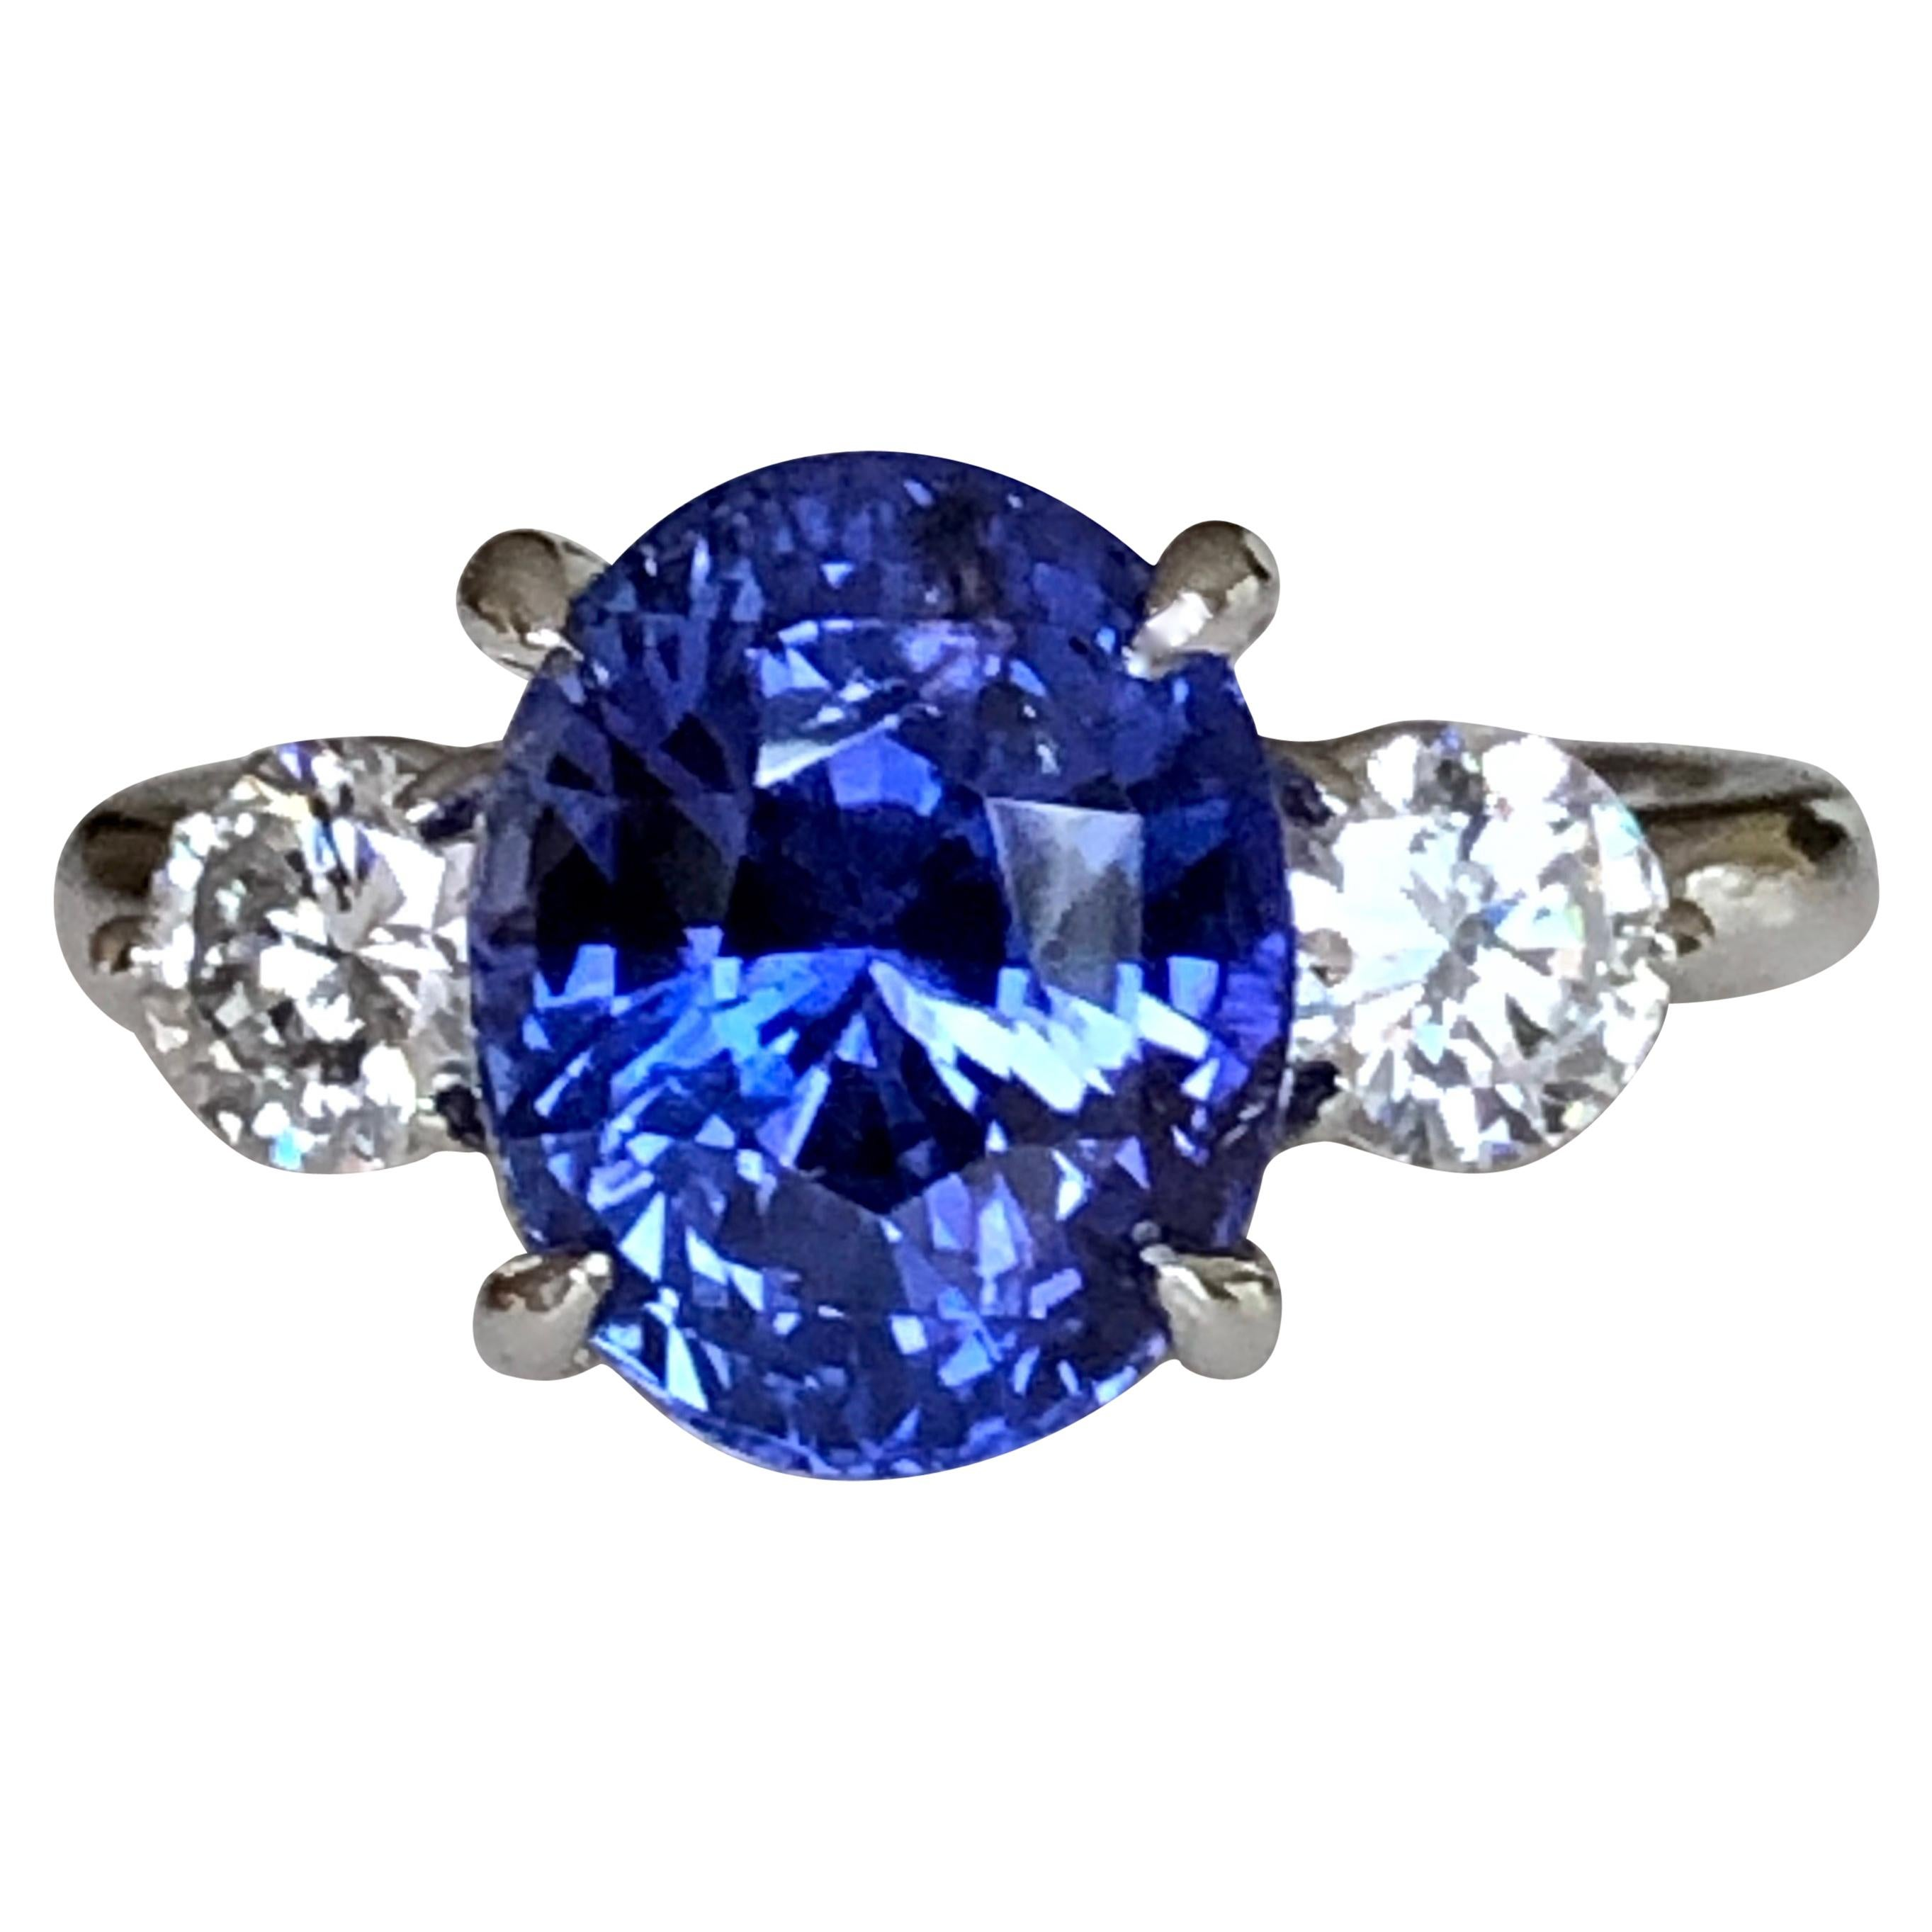 7.18 Carat GIA No Heat Color-Changing Sapphire Diamond Engagement Ring 18K